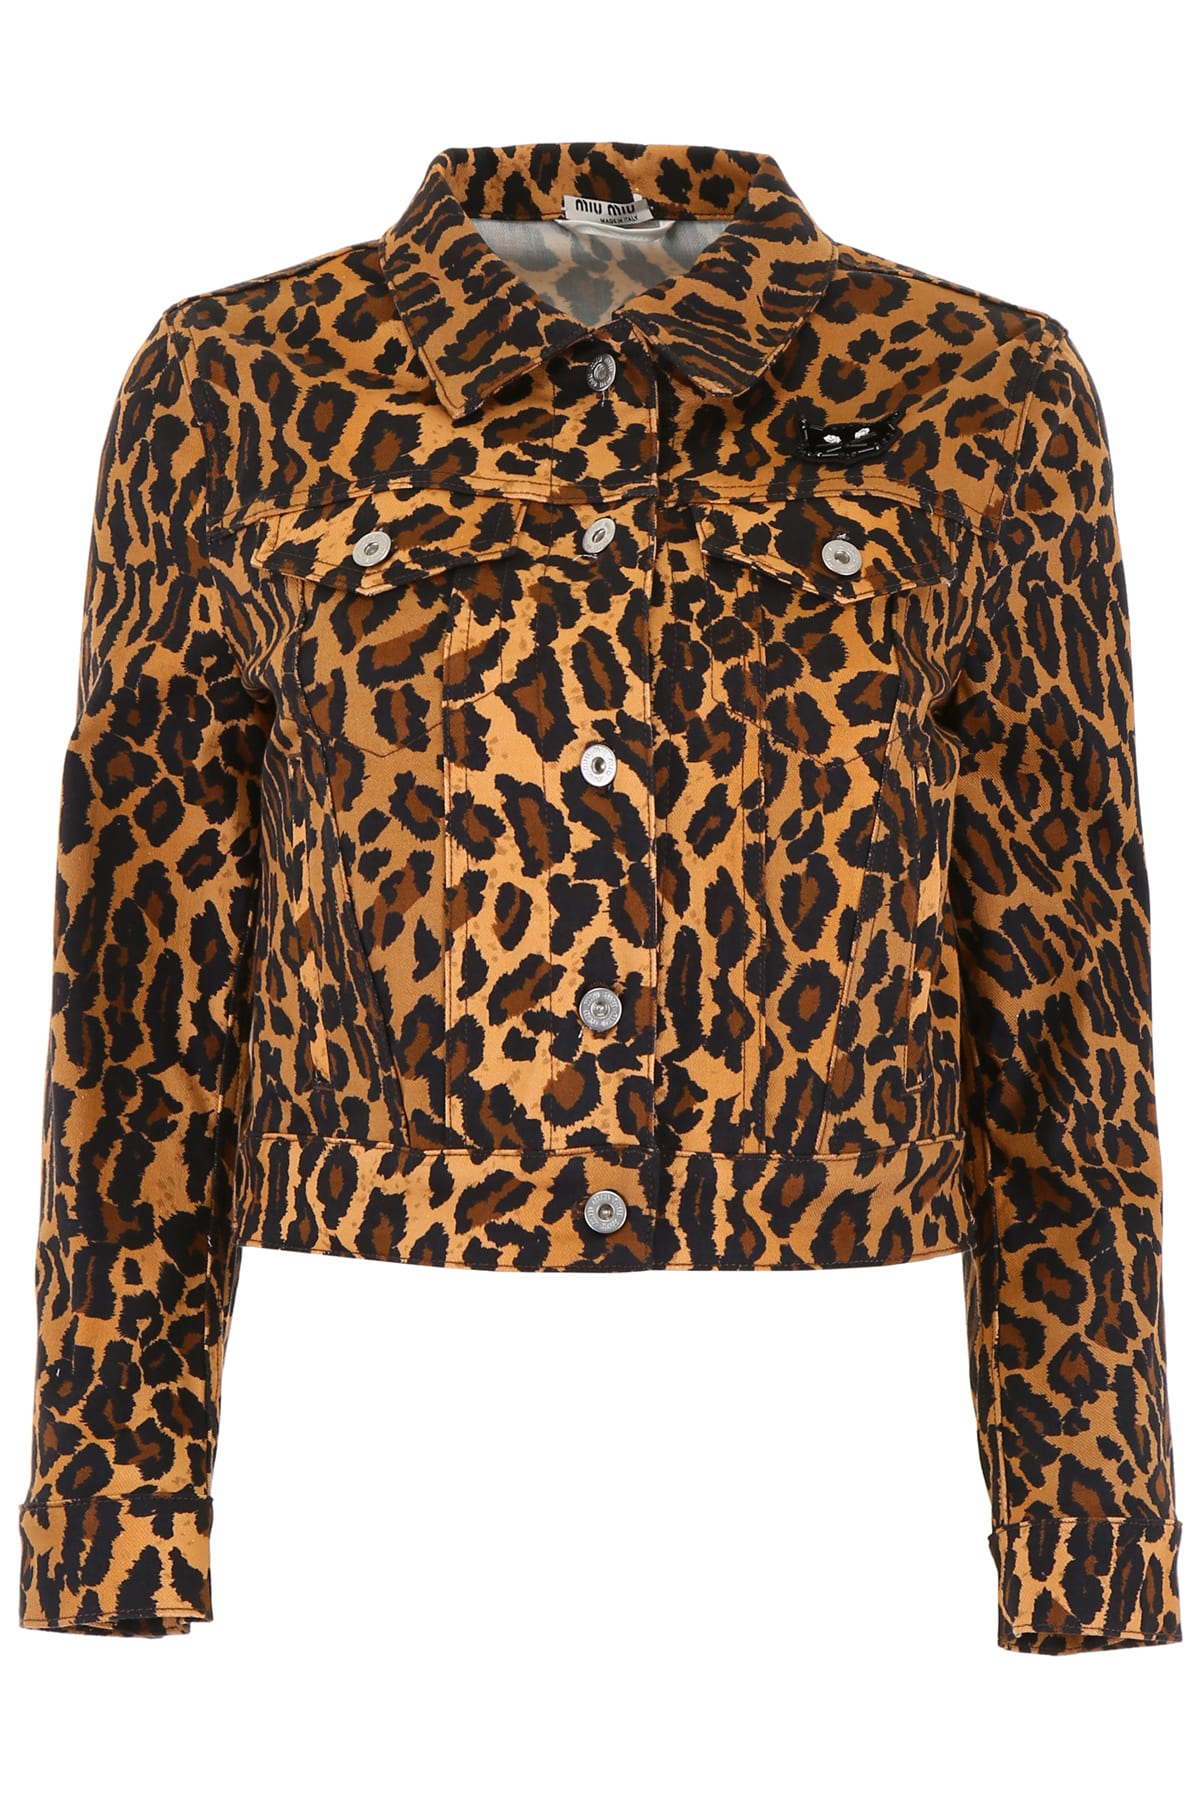 Miu Miu Leopard-printed Denim Jacket